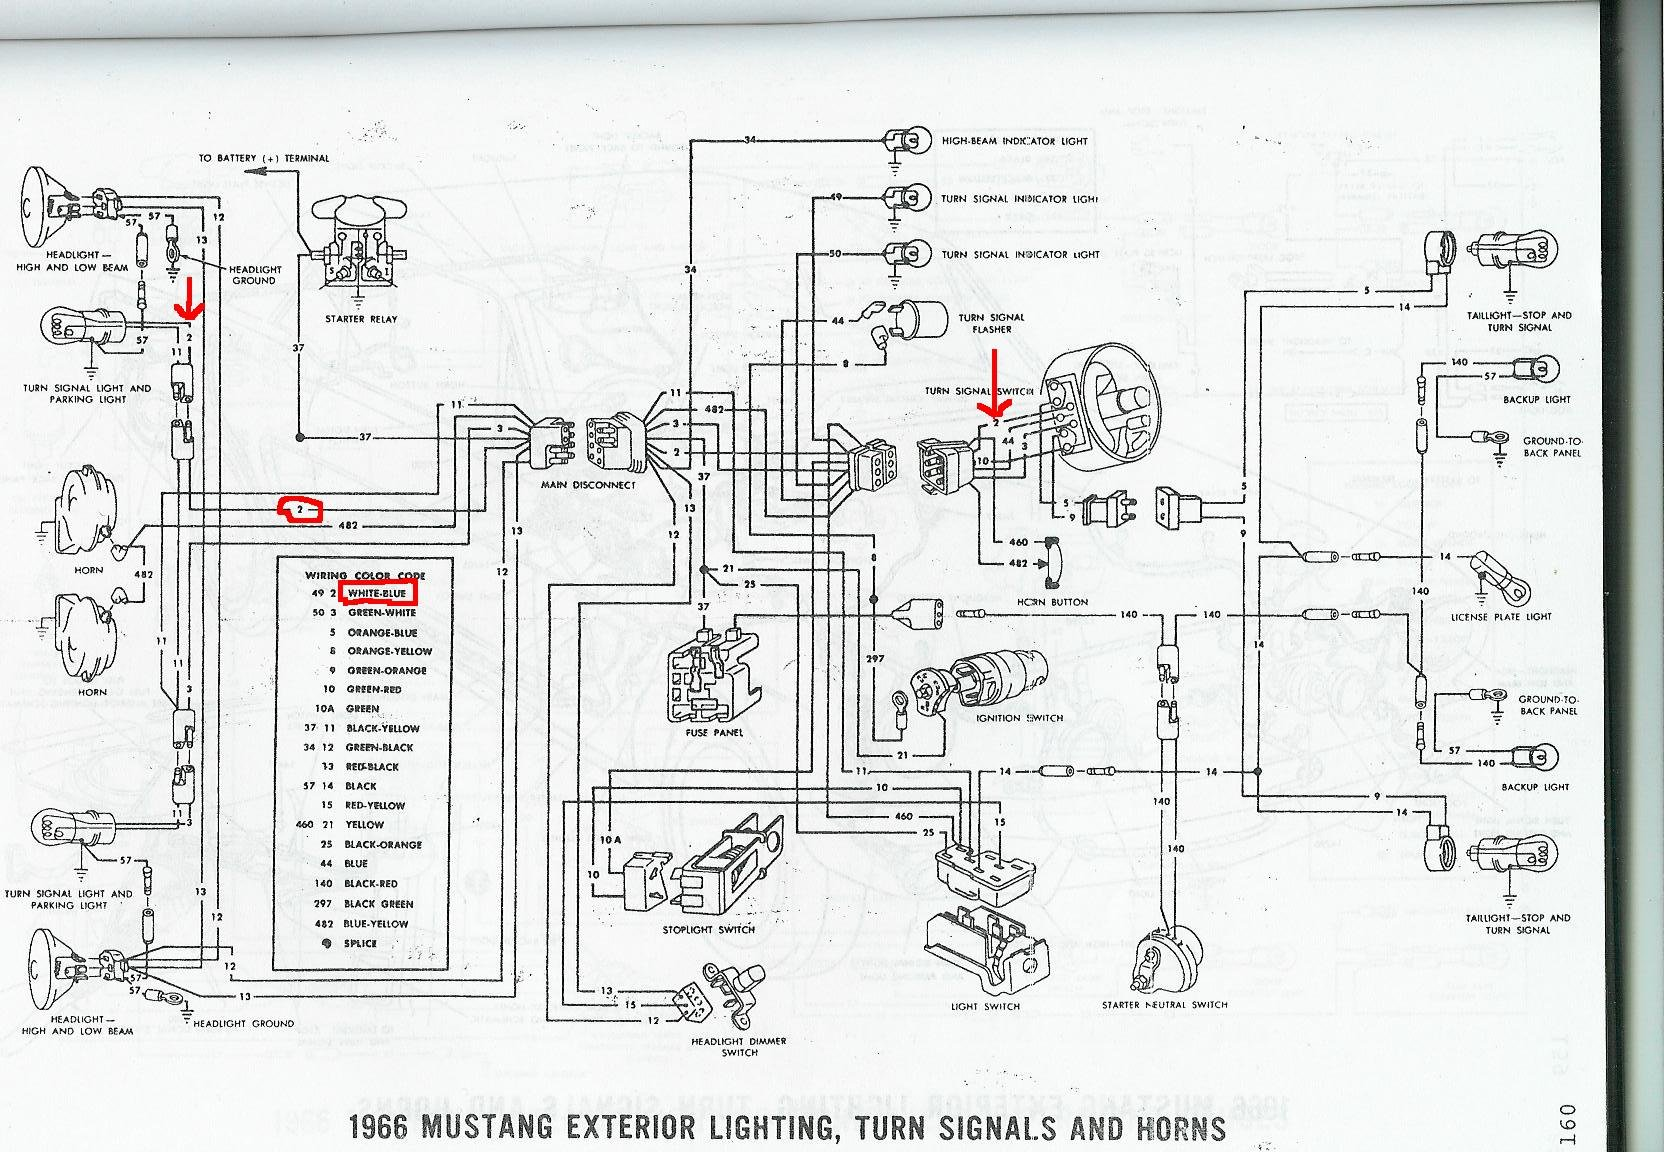 1966 Mustang Park Lights. Please tell me how they are supposed to work? |  Ford Mustang Forum | Turn Signal Wiring Diagram For 1966 Mustang |  | All Ford Mustangs